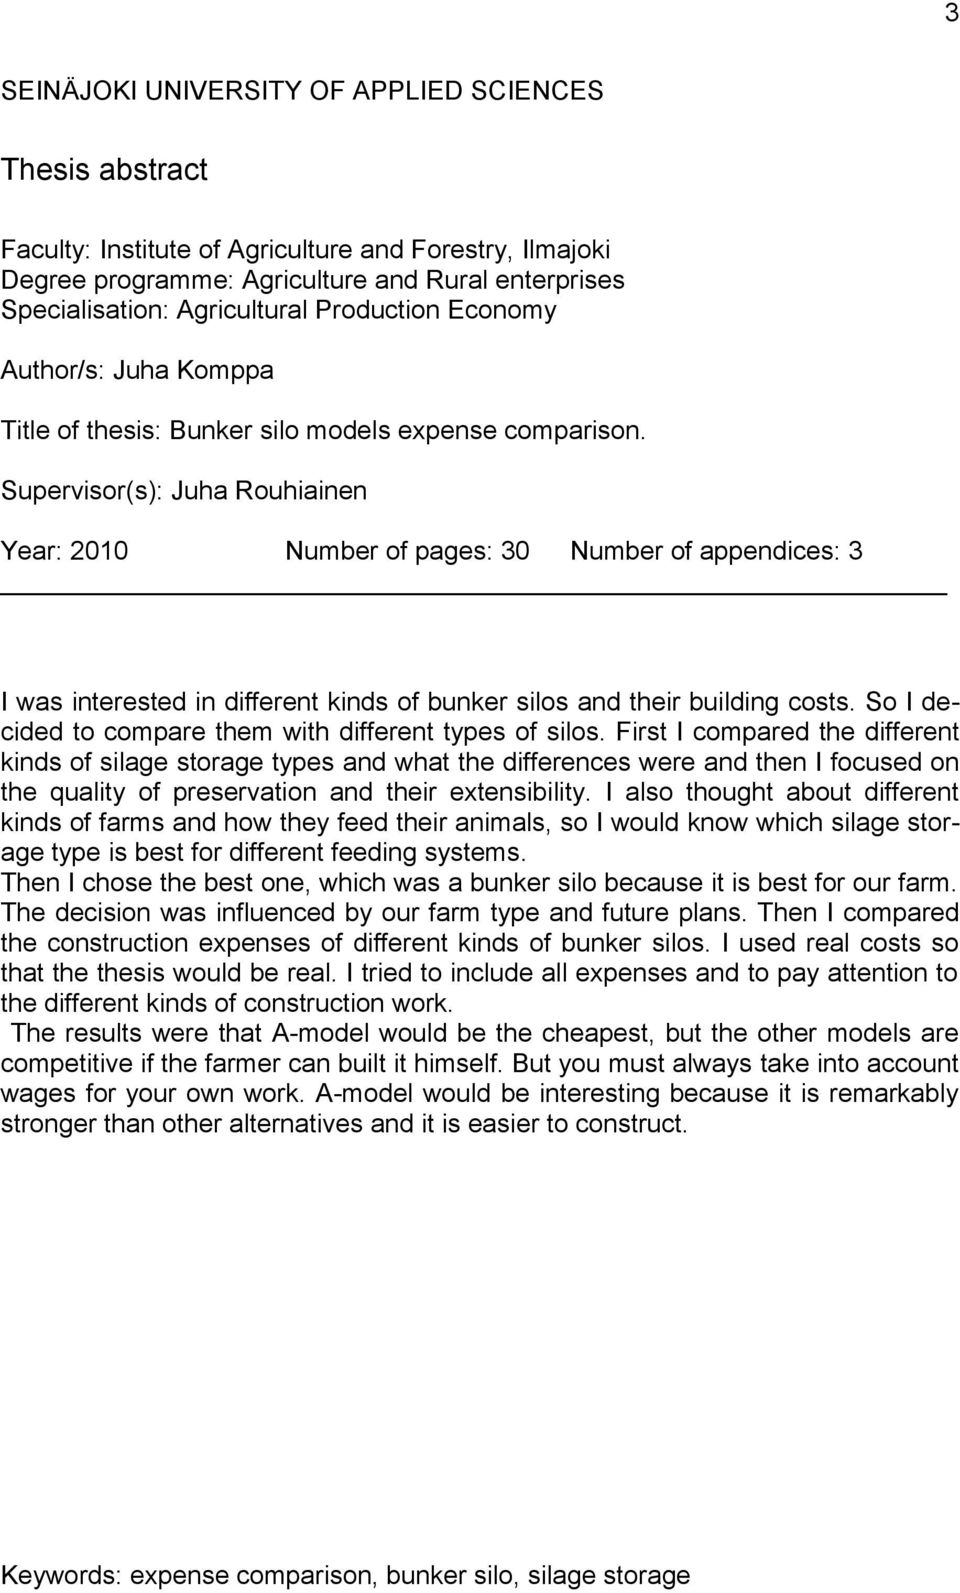 Supervisor(s): Juha Rouhiainen Year: 2010 Number of pages: 30 Number of appendices: 3 I was interested in different kinds of bunker silos and their building costs.